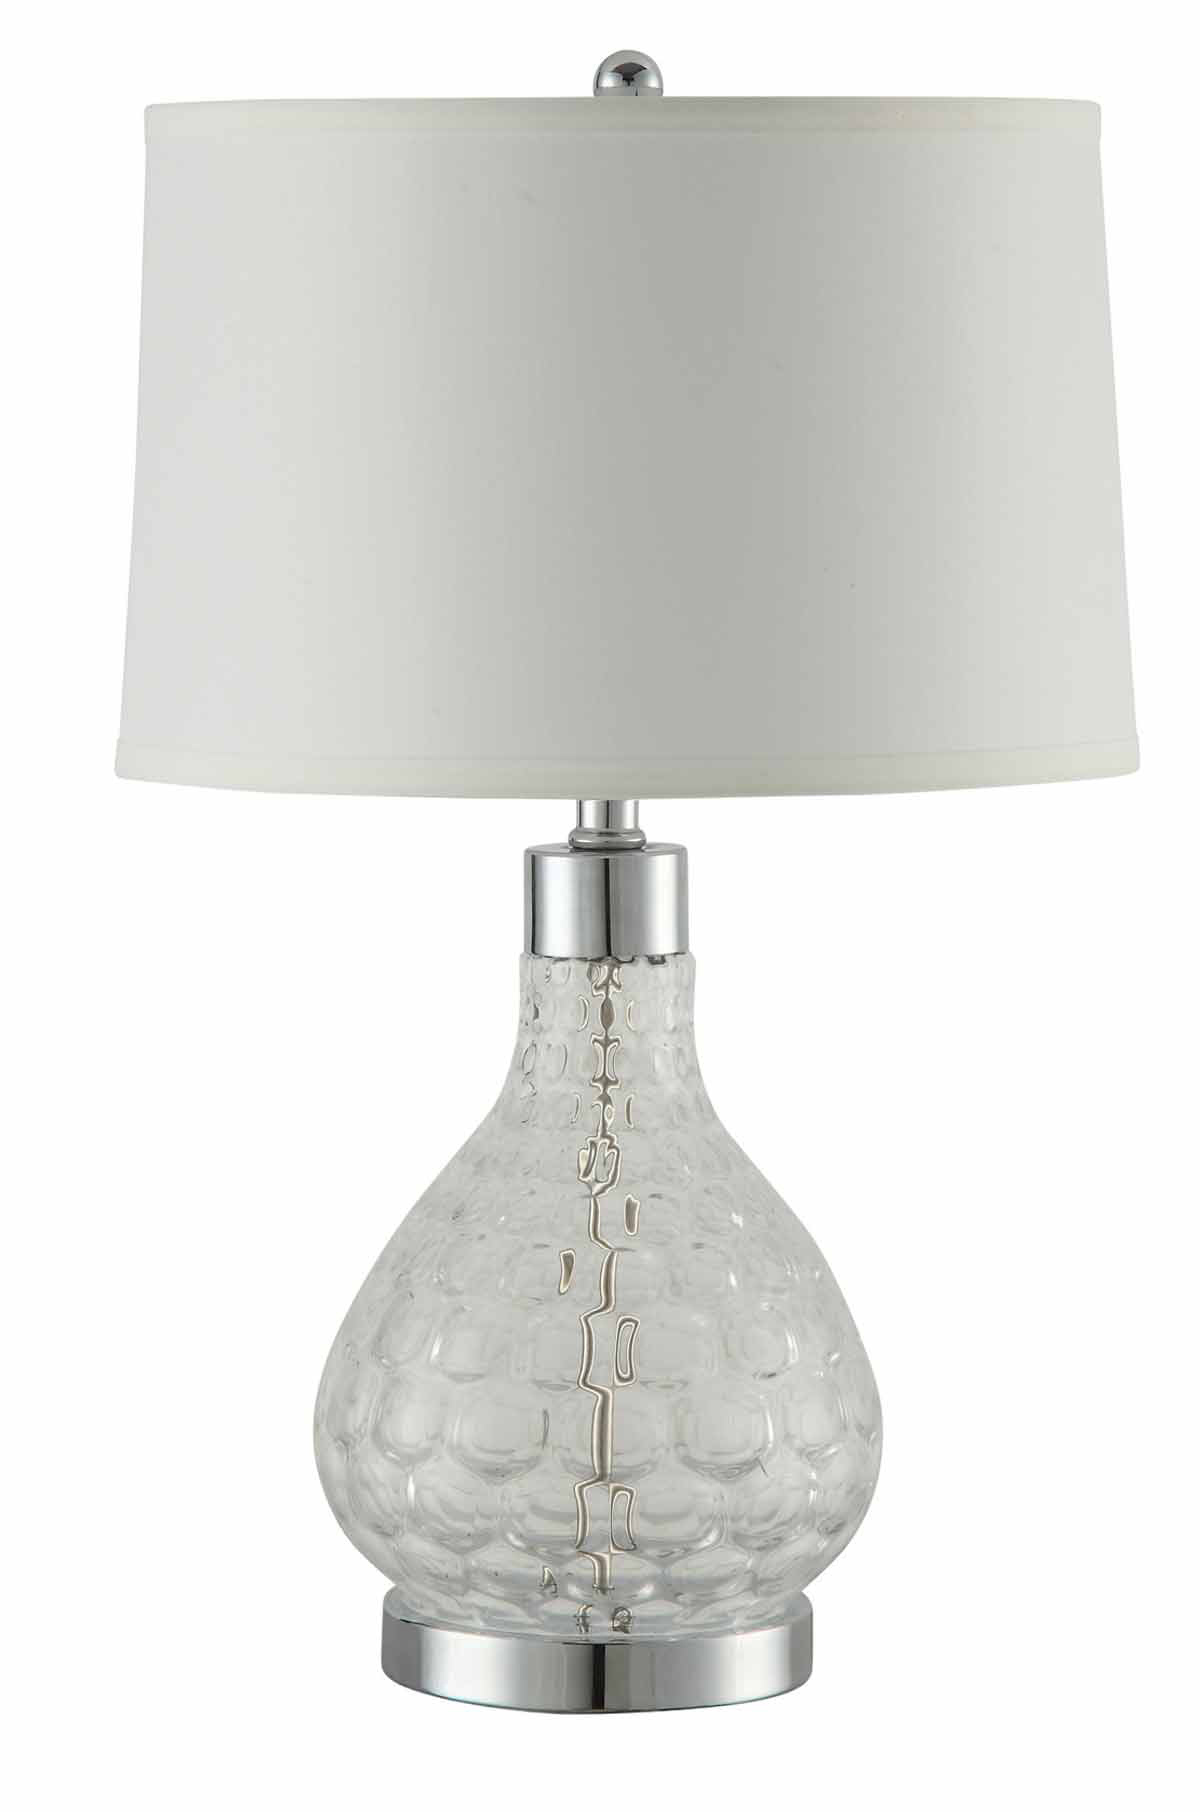 Coaster 901547 Table Lamp - Clear/Chrome